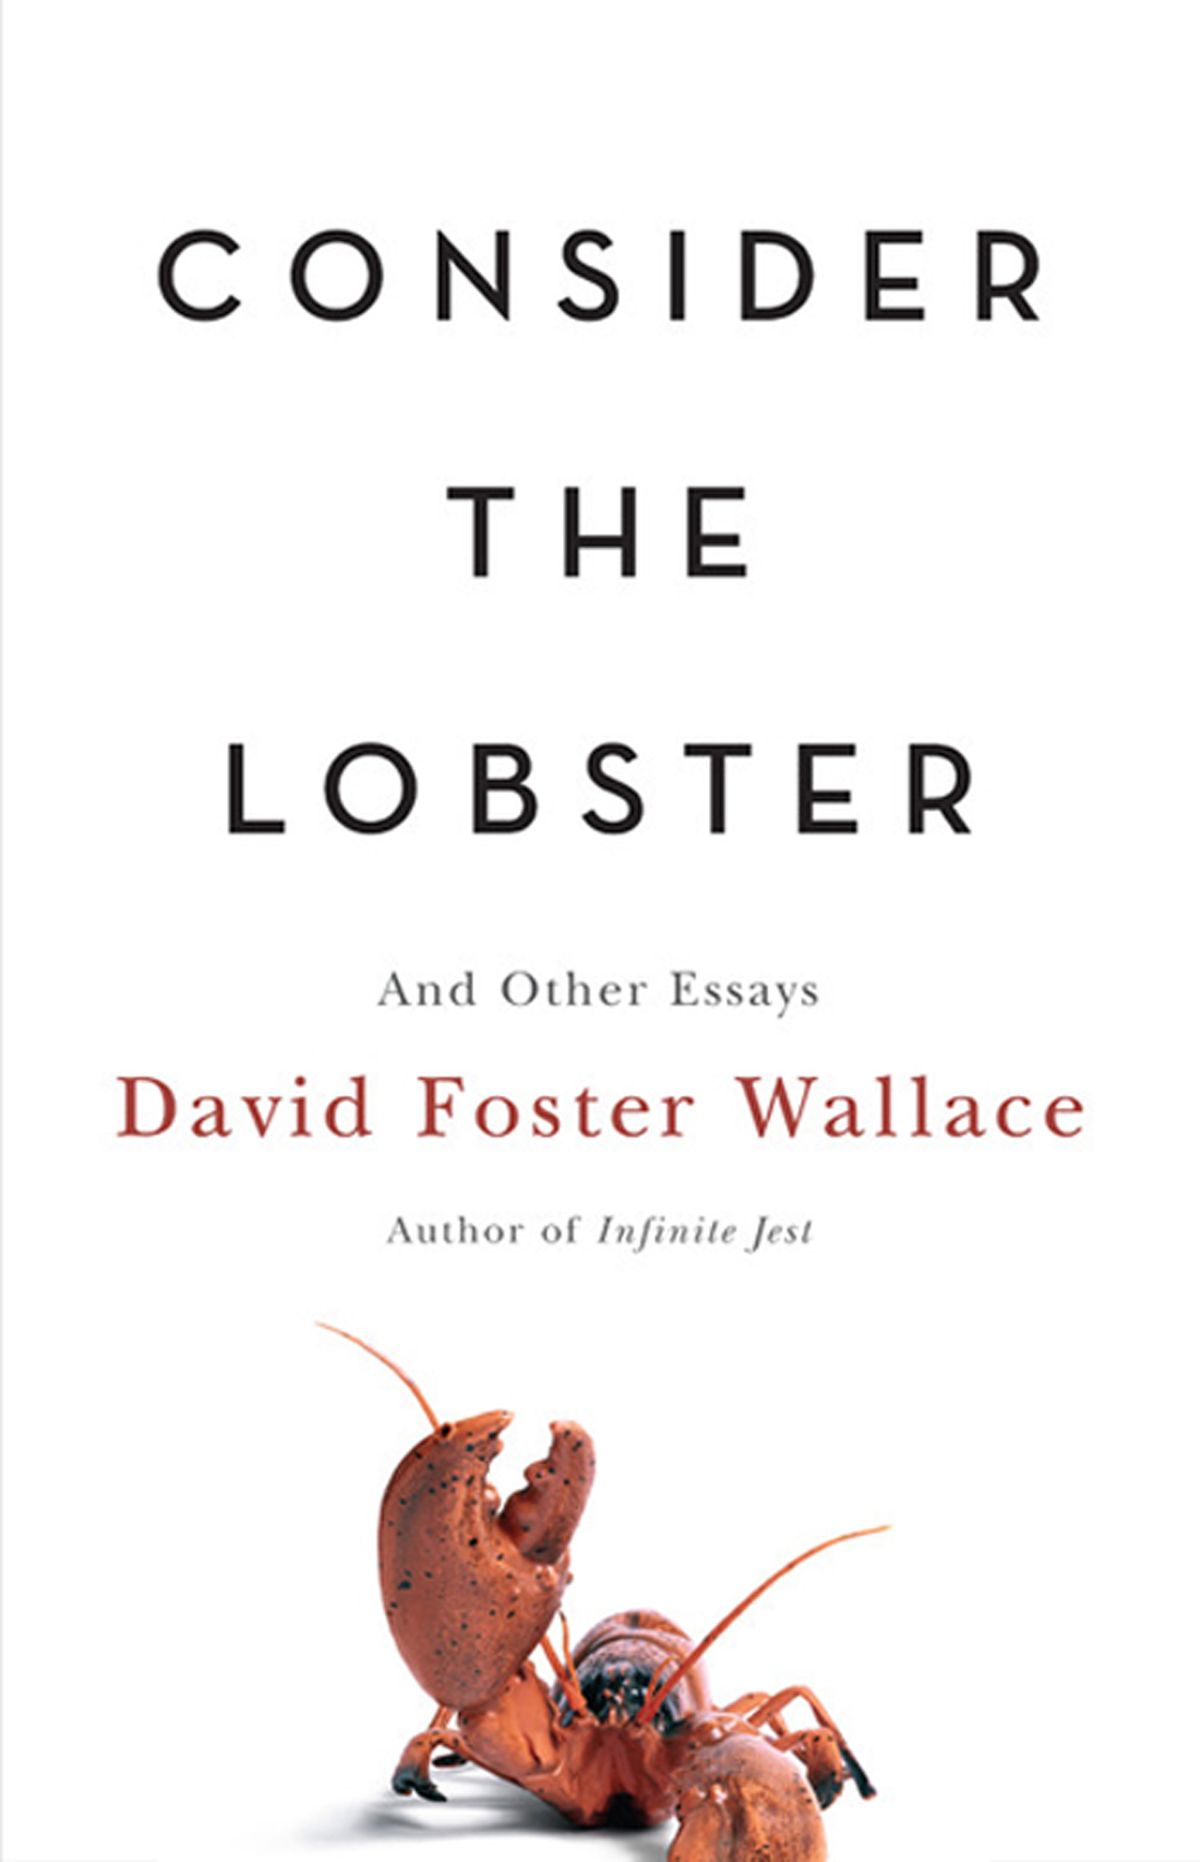 002 Consider The Lobster Essay Exceptional Rhetorical Analysis And Other Essays Summary Full